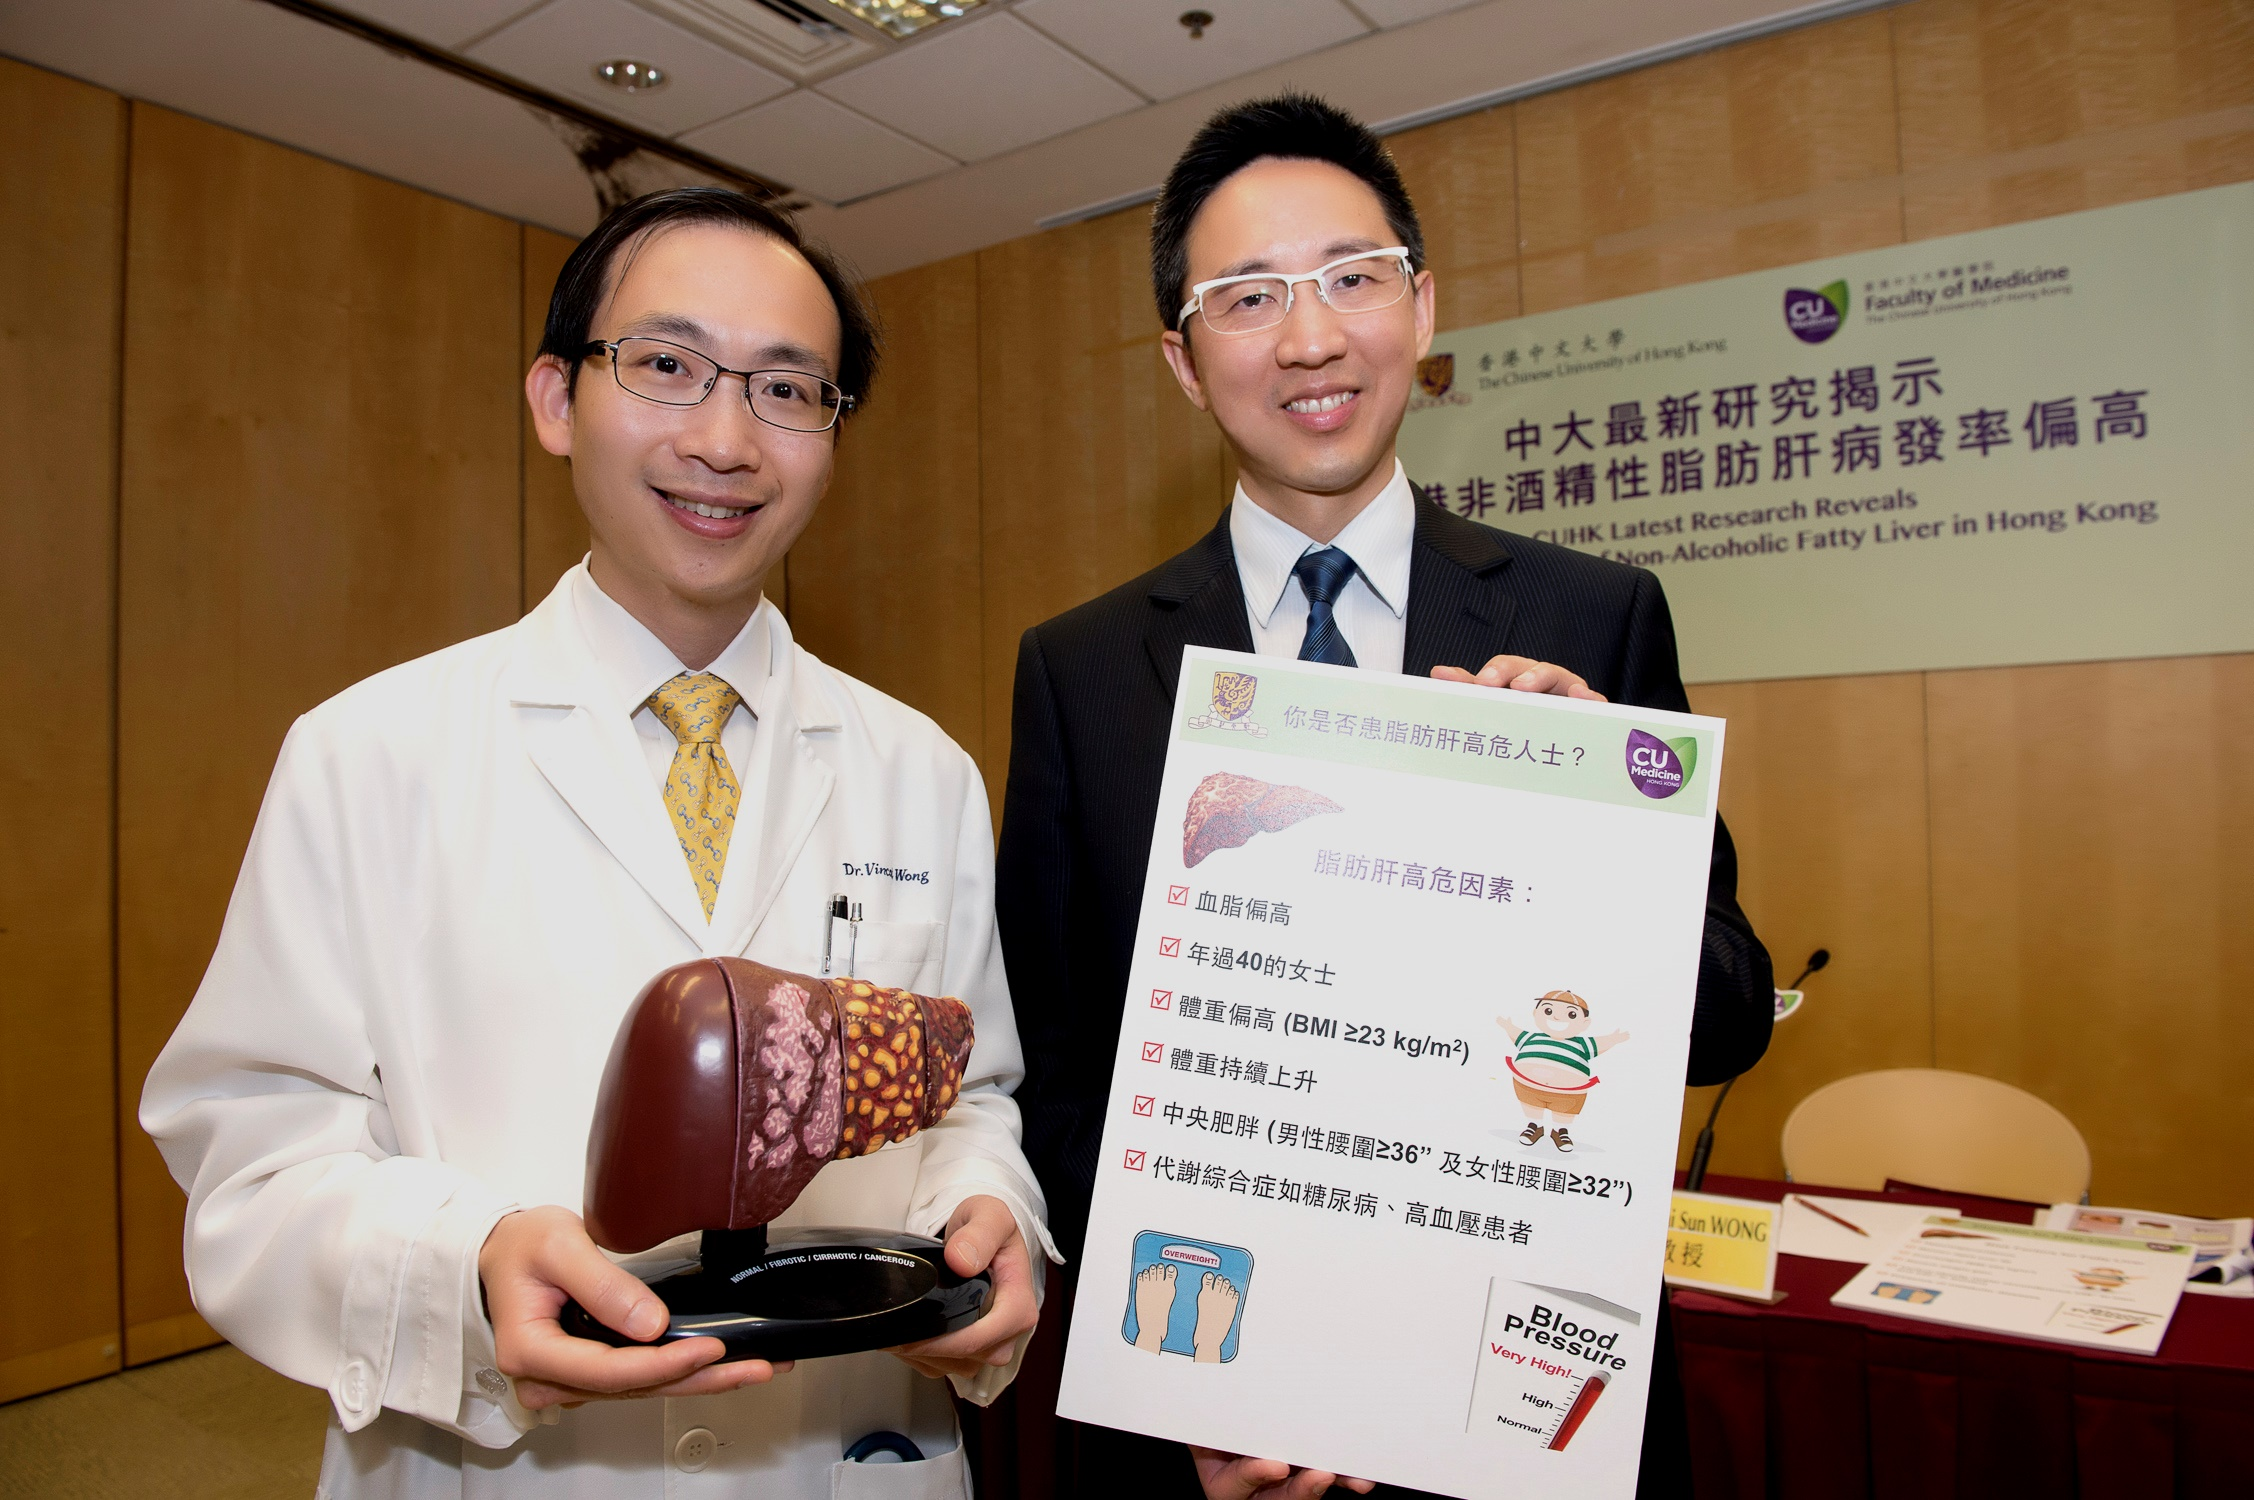 Prof. Henry Chan, Head of the Division of Gastroenterology and Hepatology